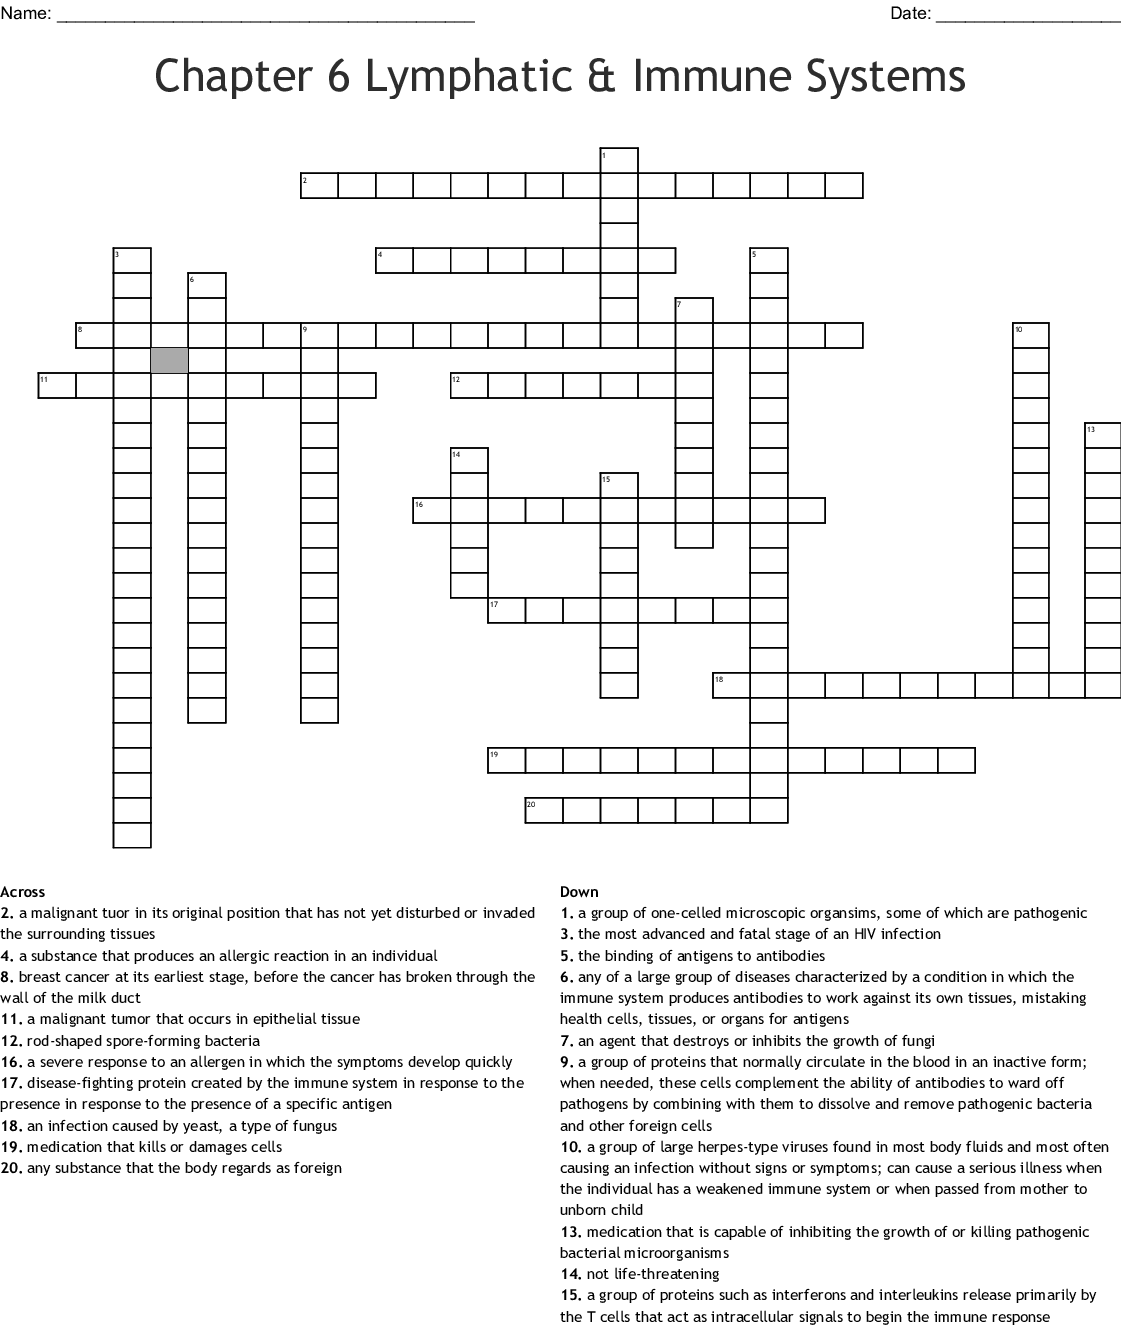 Chapter 6 Lymphatic Amp Immune Systems Crossword